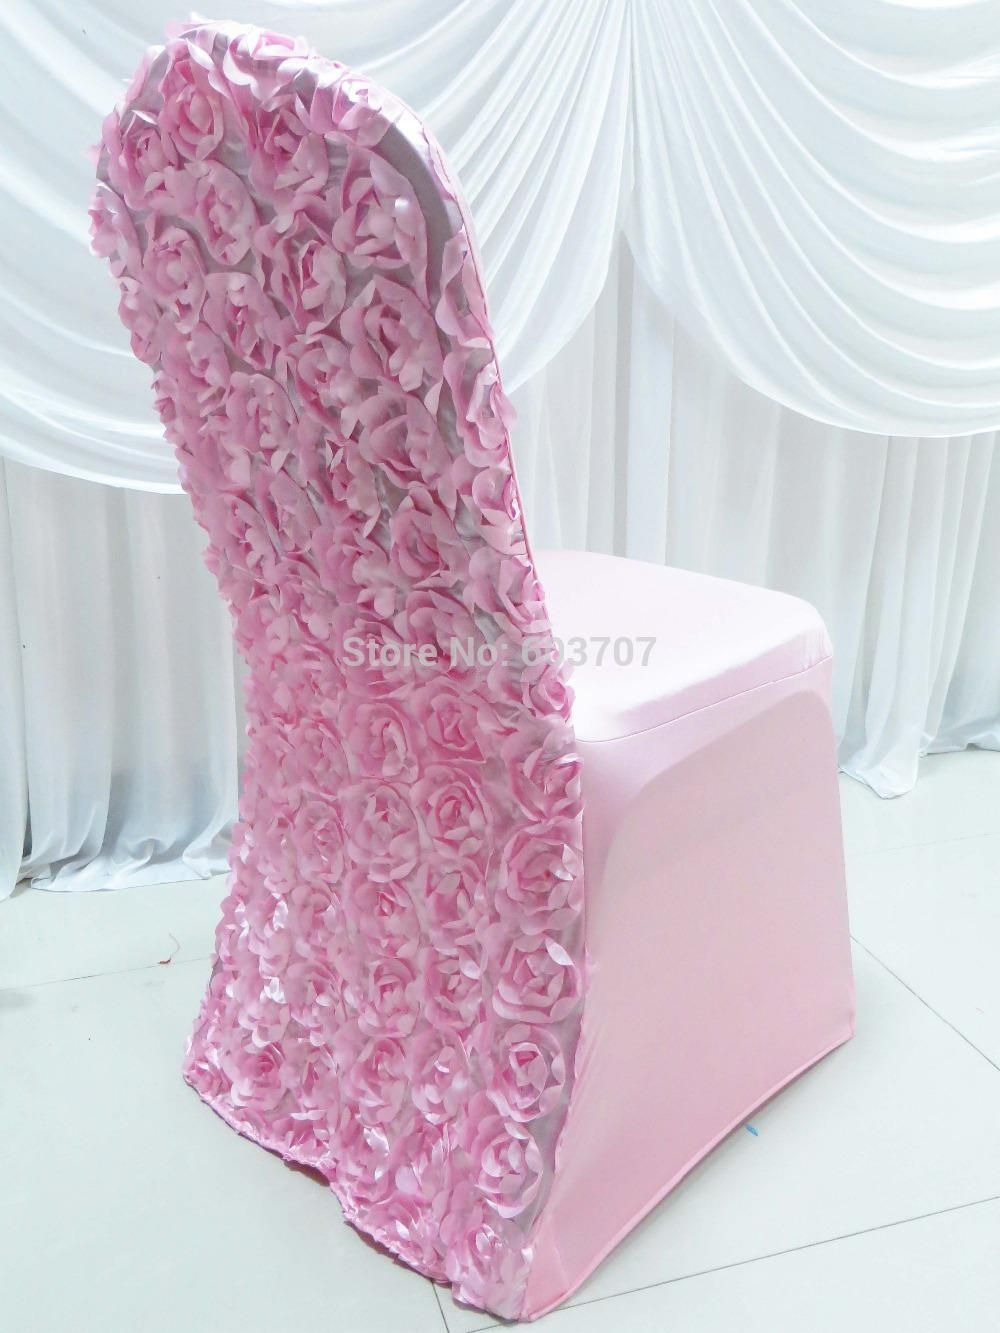 Wholesale Spandex Stretch Lycra Chair Cover With 3d Satin